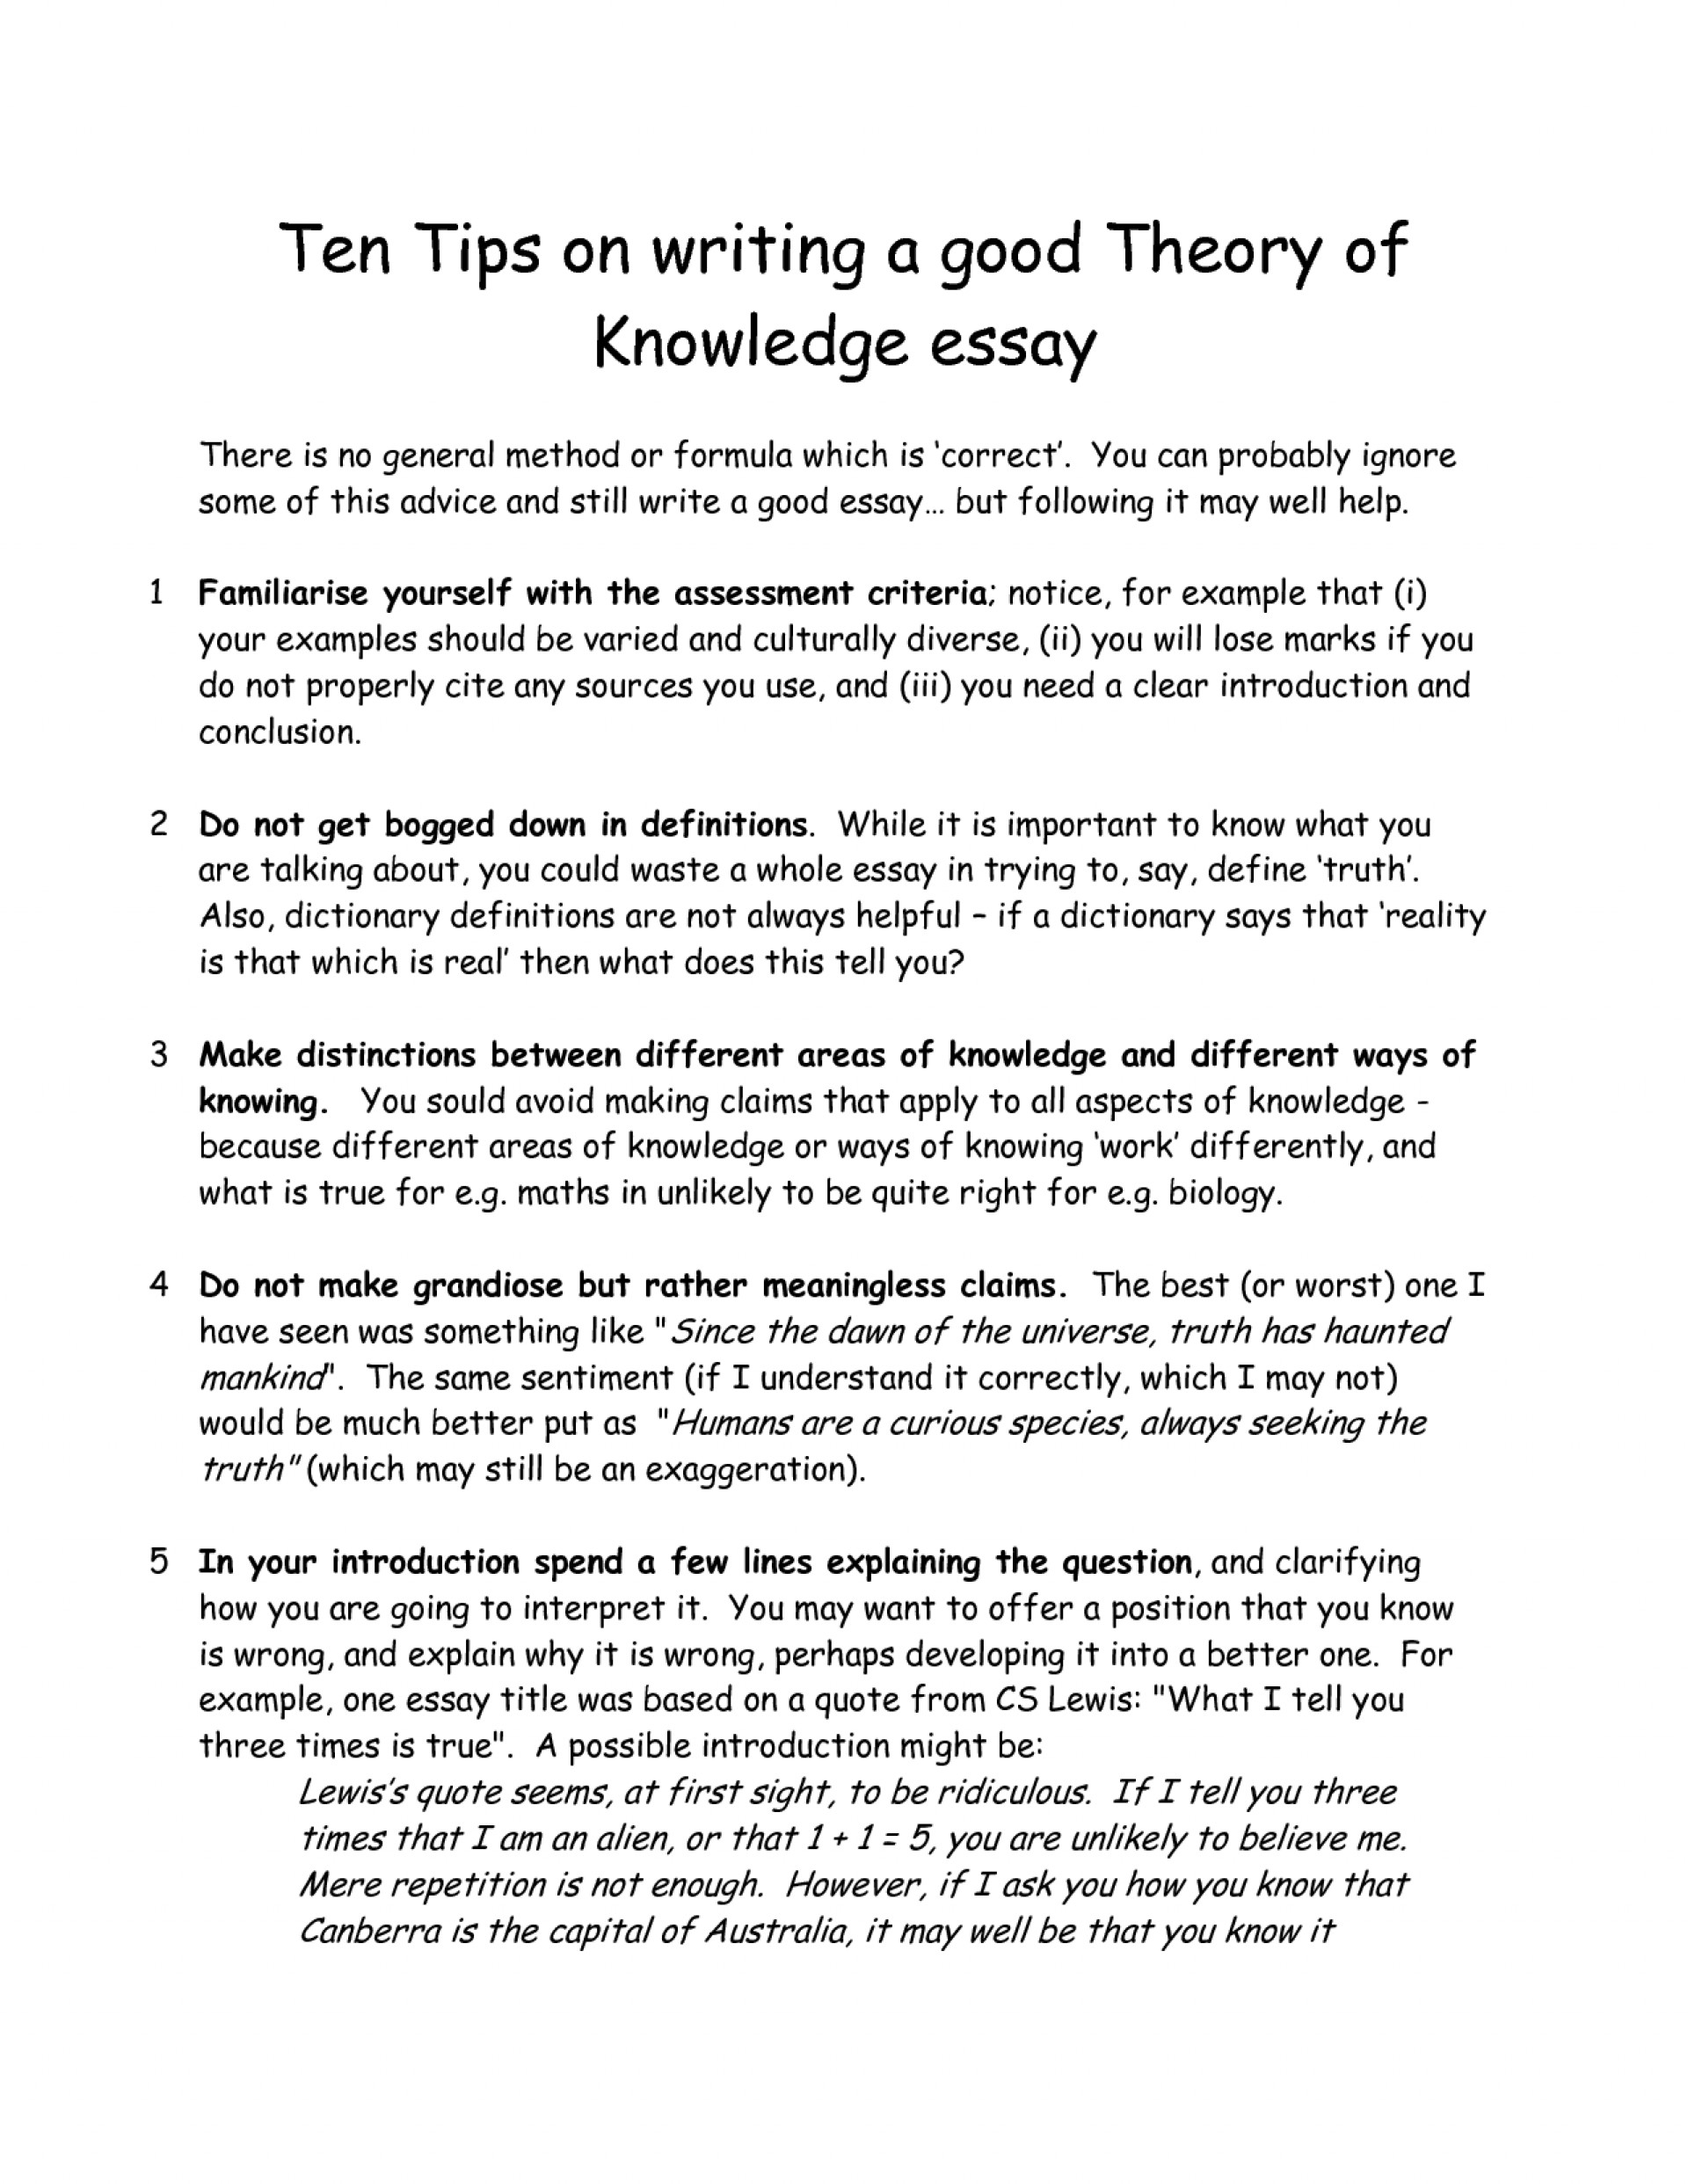 003 Qqllg0v8ct Write About Yourself Essay Rare Examples An And Your Family Experiences Interests 1920